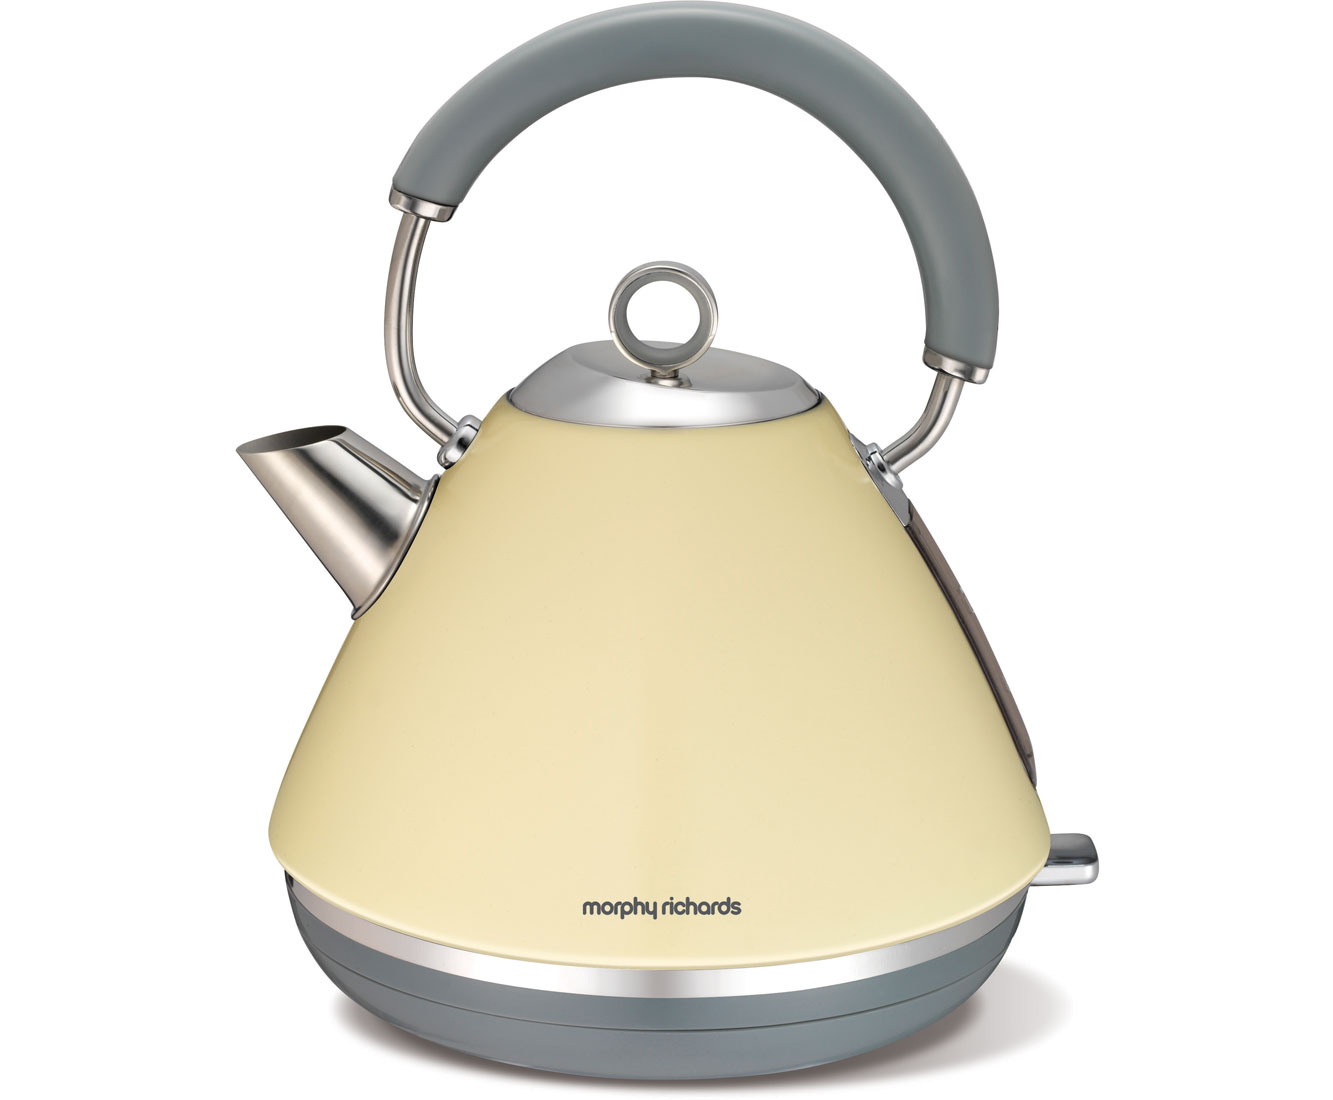 Morphy Richards Accents 102003 Kettle - Cream